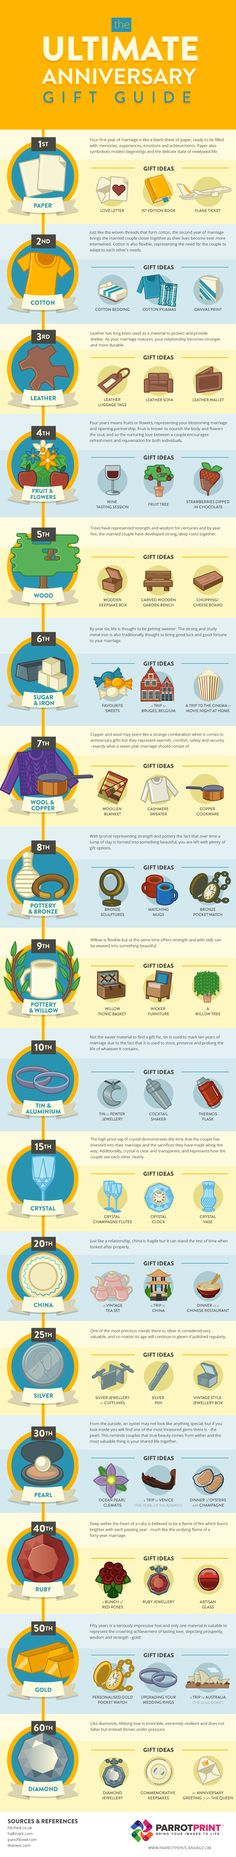 The Ultimate Anniversary Gift Guide #Infographic #Gift #LifeStyle